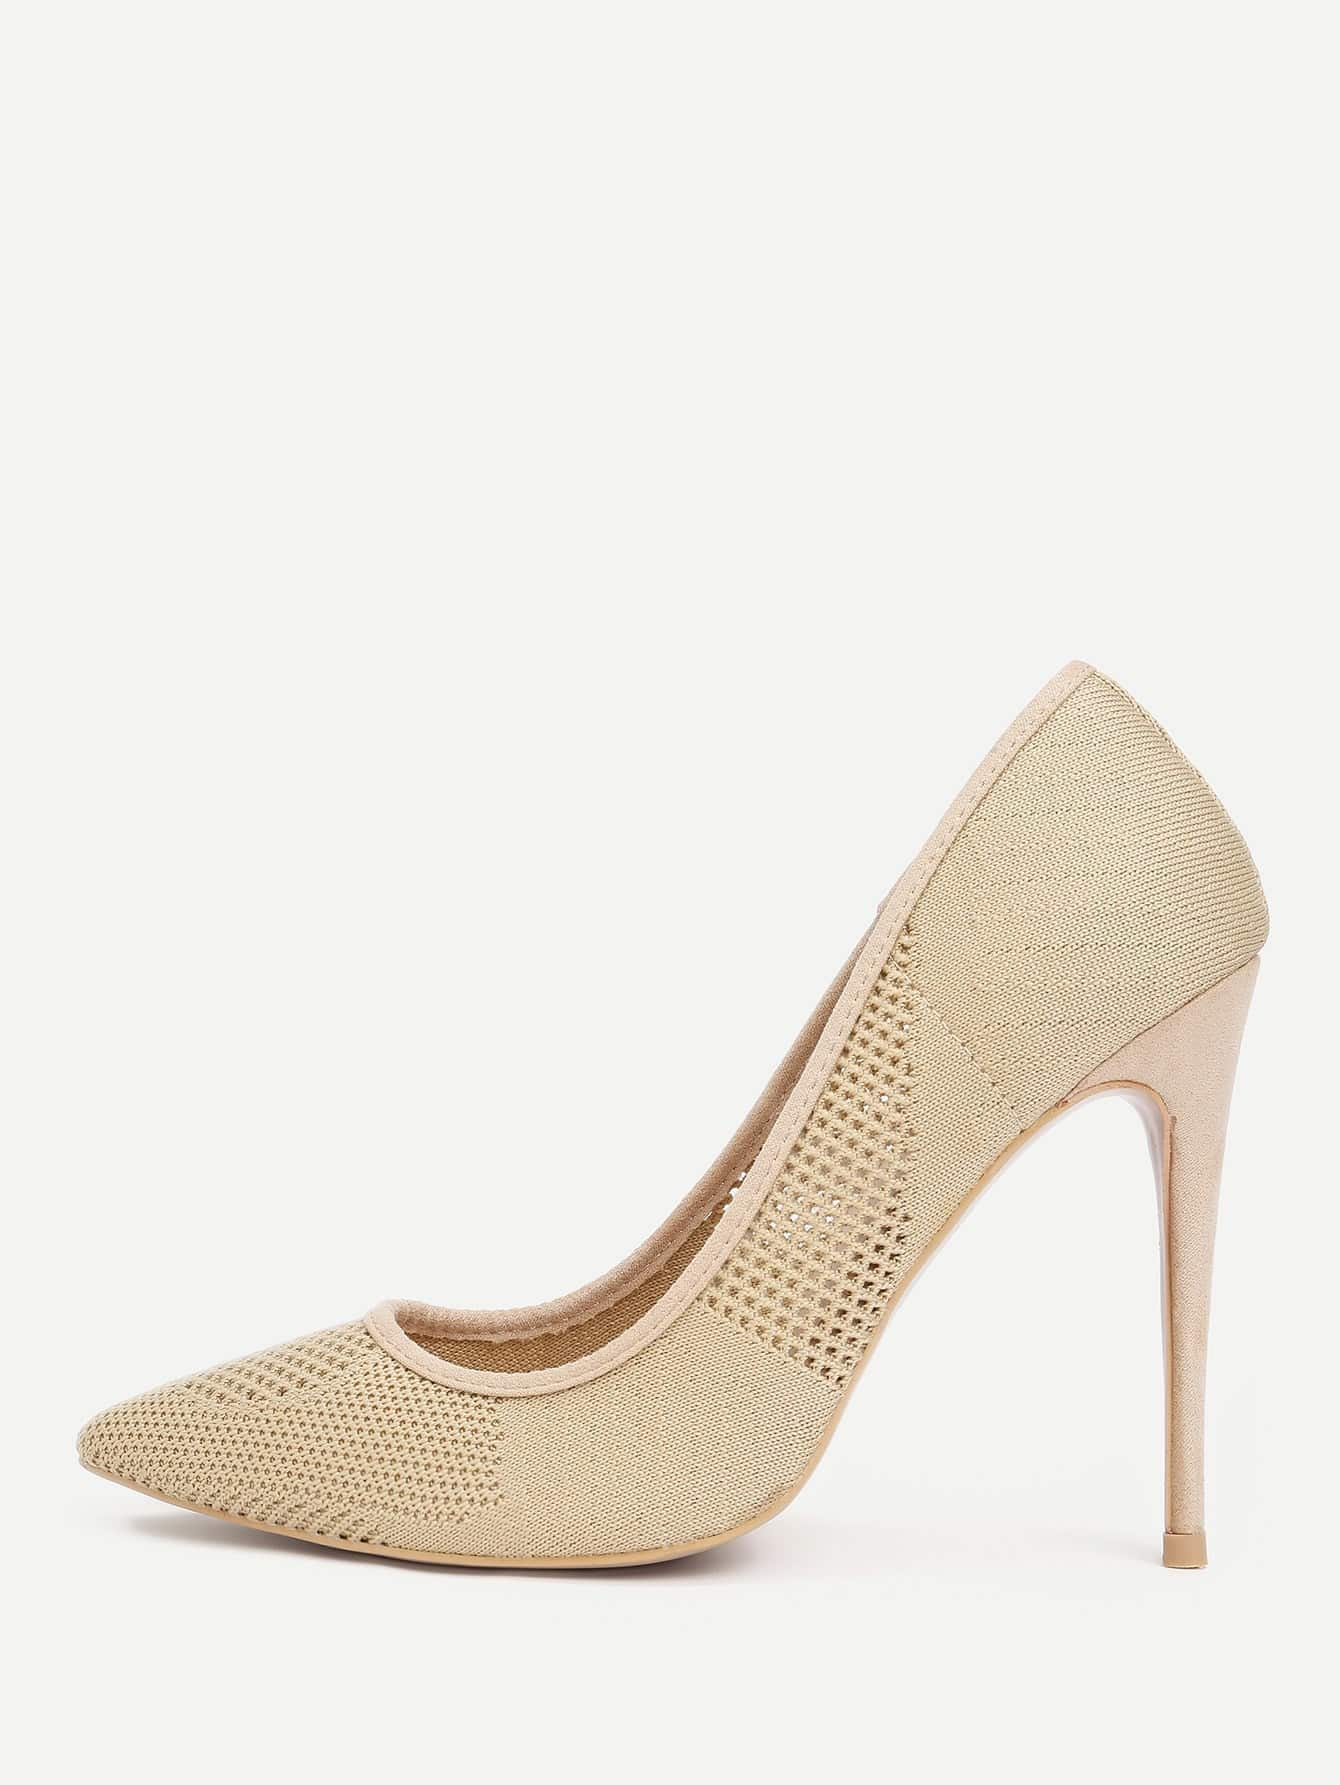 Knit Design Pointed Toe Stiletto Pumps